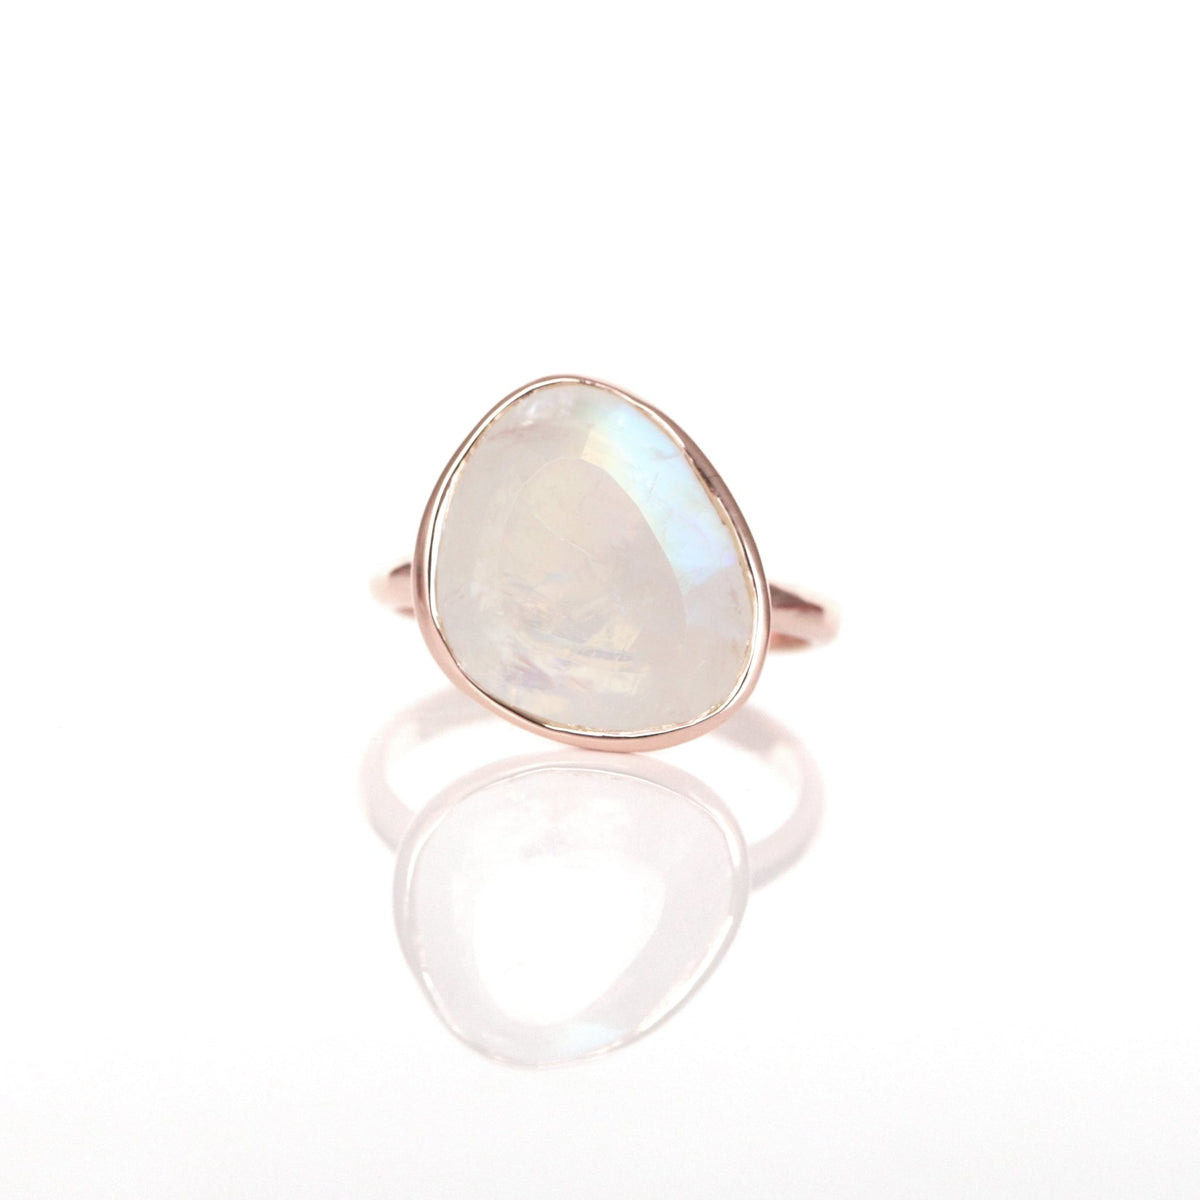 JOY RING - RAINBOW MOONSTONE & ROSE GOLD - SO PRETTY CARA COTTER